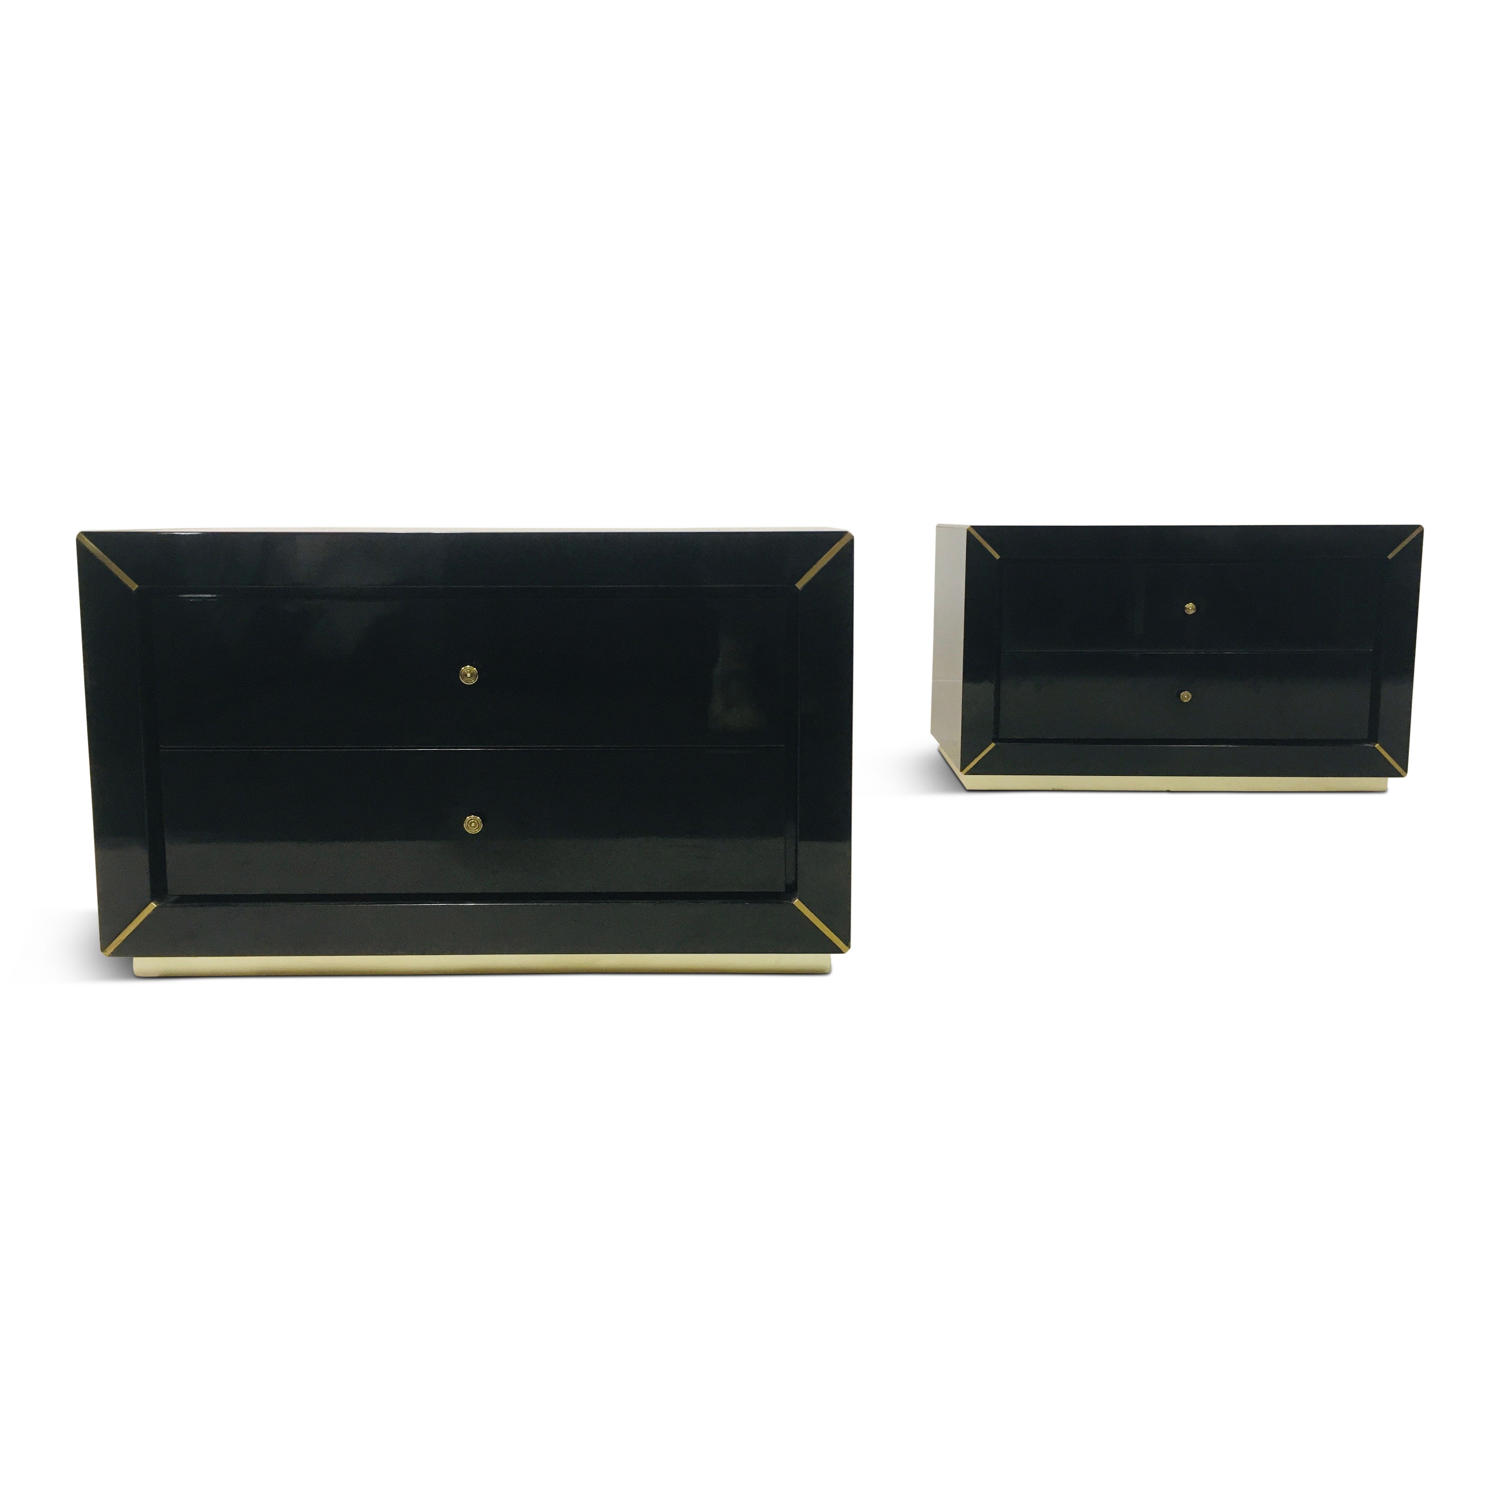 A pair of 1970s Italian black lacquered and brass bedside tables